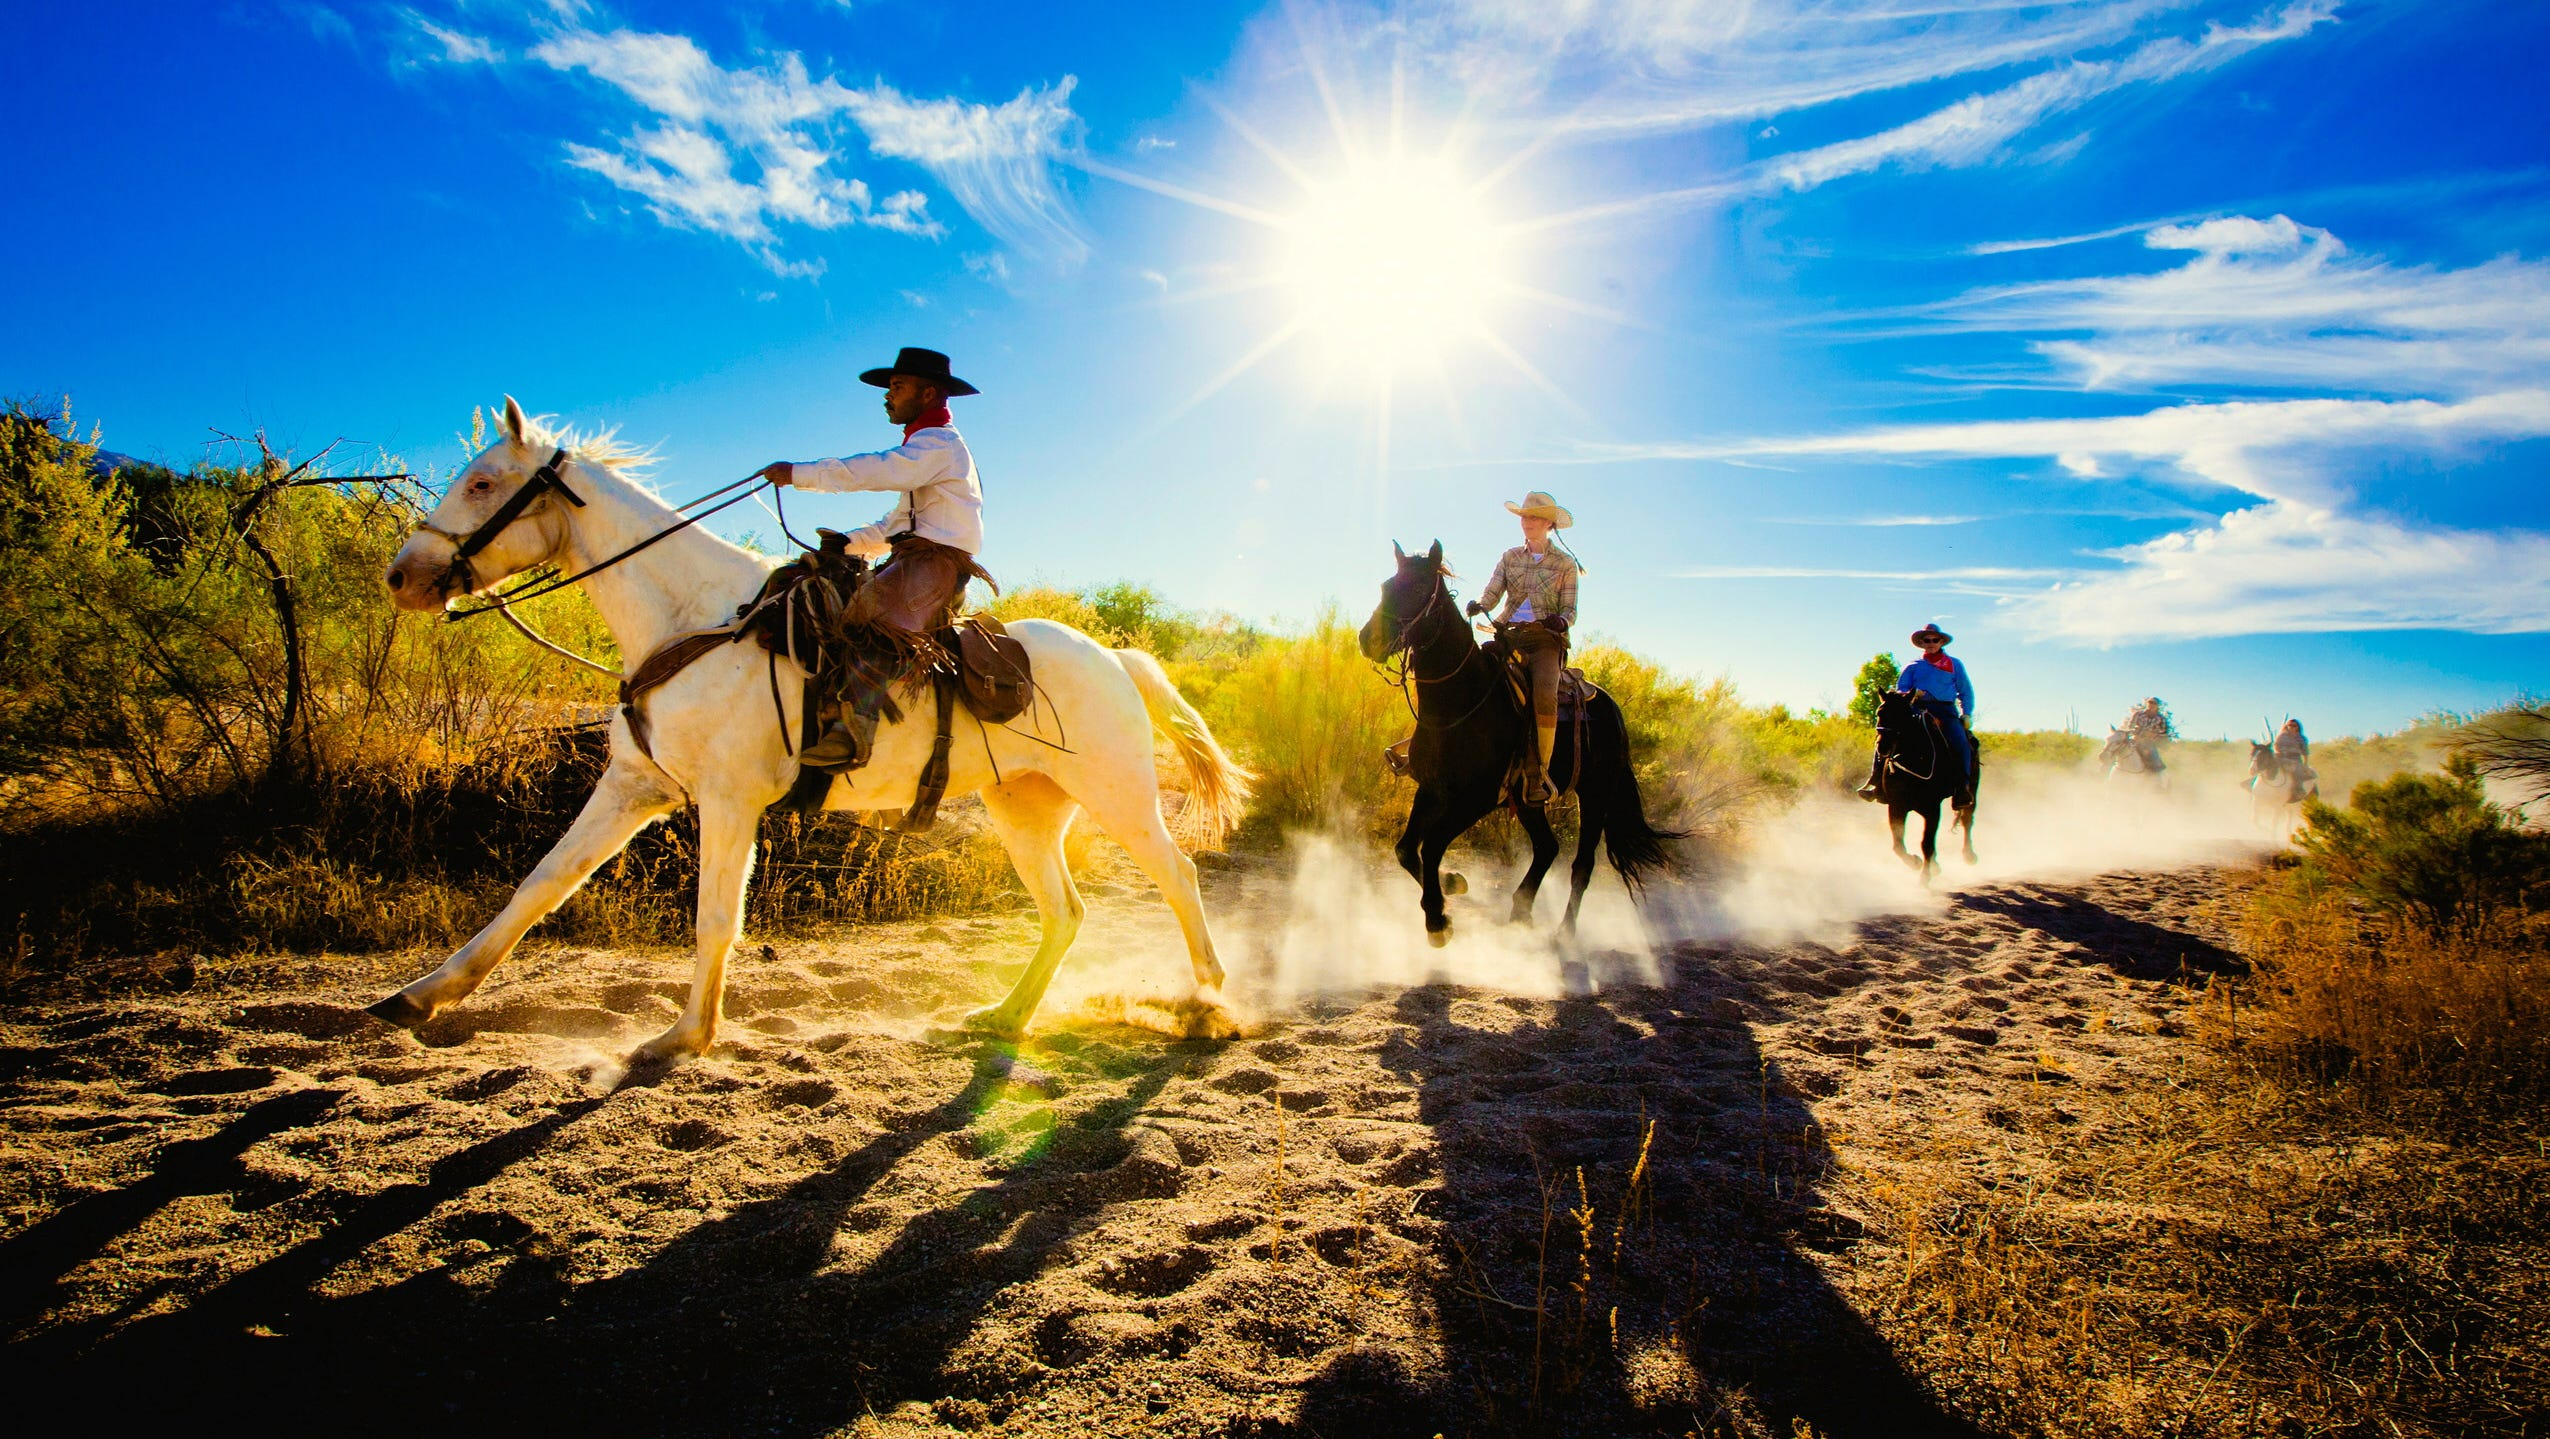 10 great dude ranches across North America